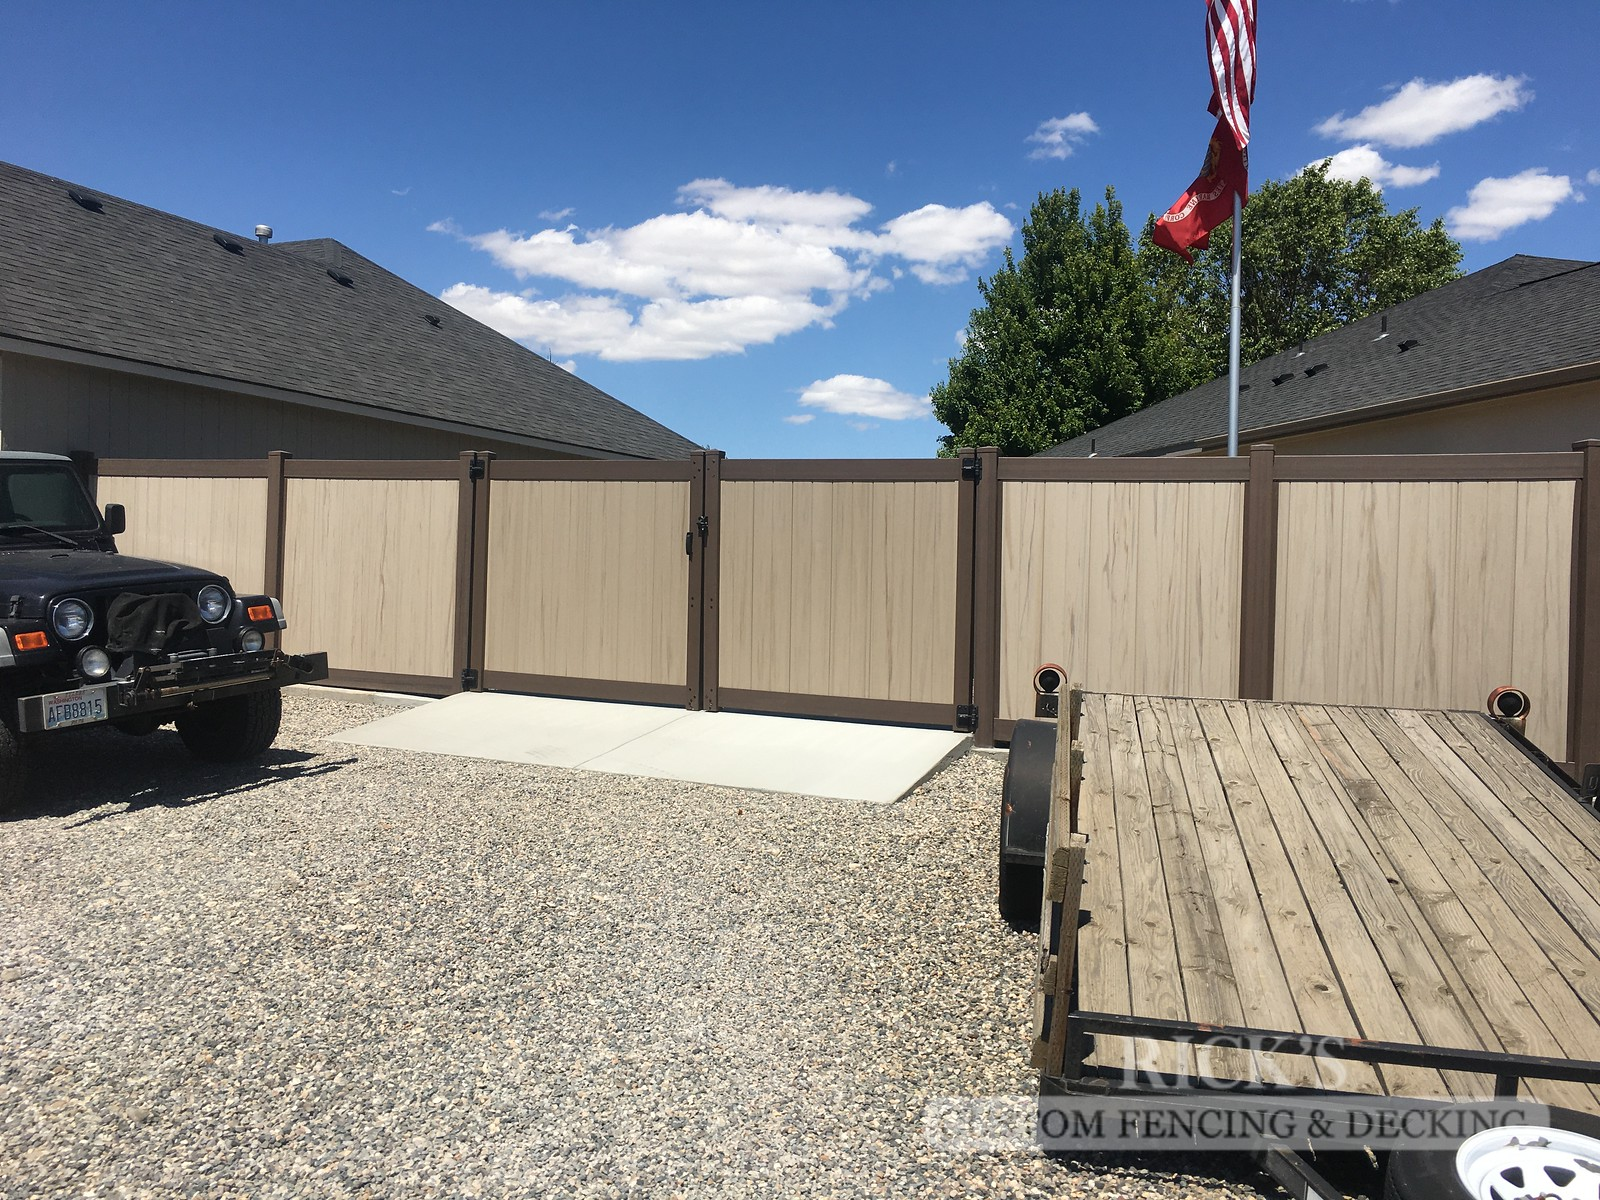 3049 - Vinyl Privacy Fencing